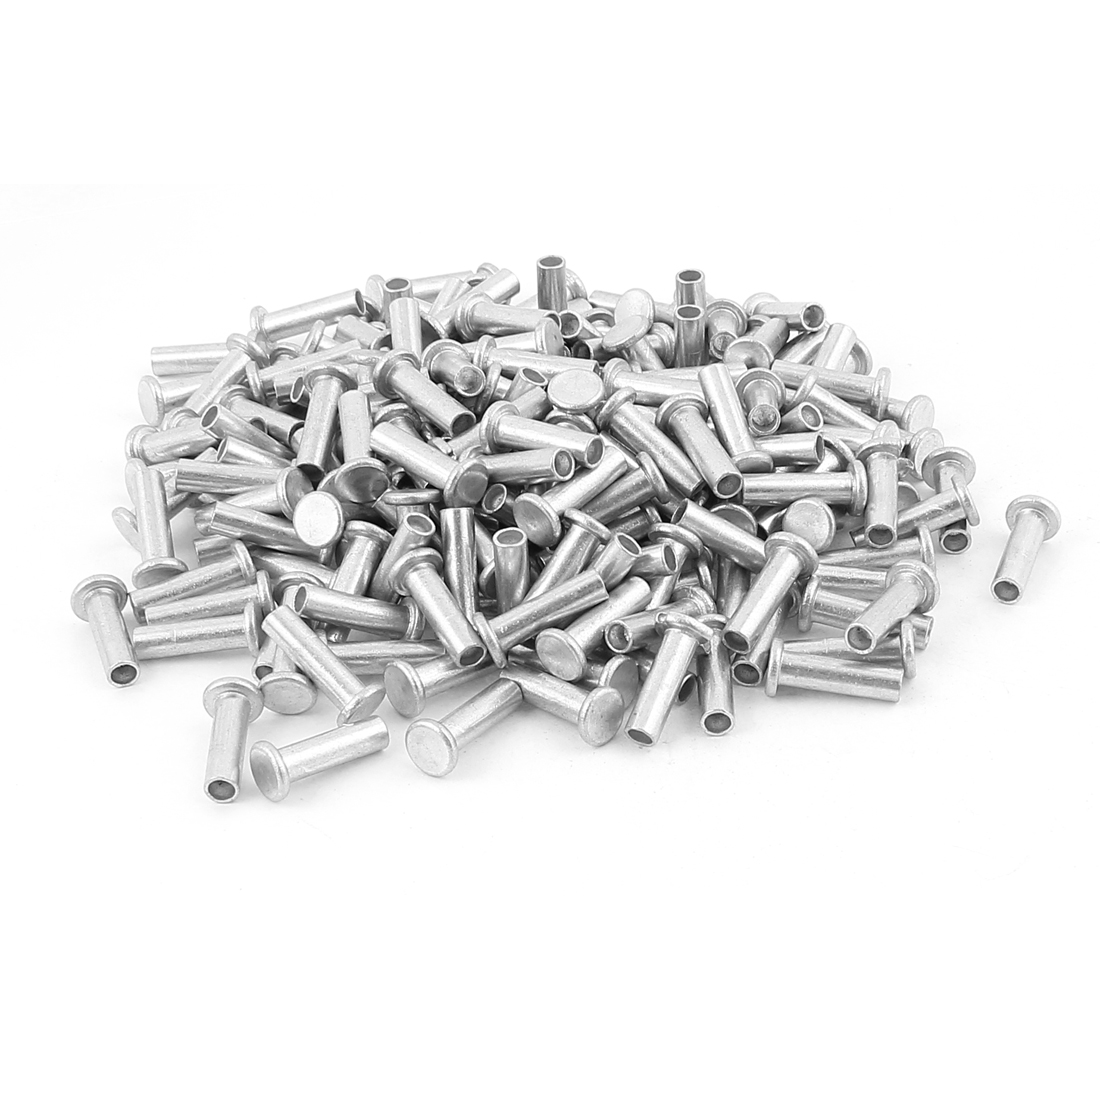 200 Pcs M6 x 20mm Aluminum Flat Head Semi-Tubular Rivets Silver Tone